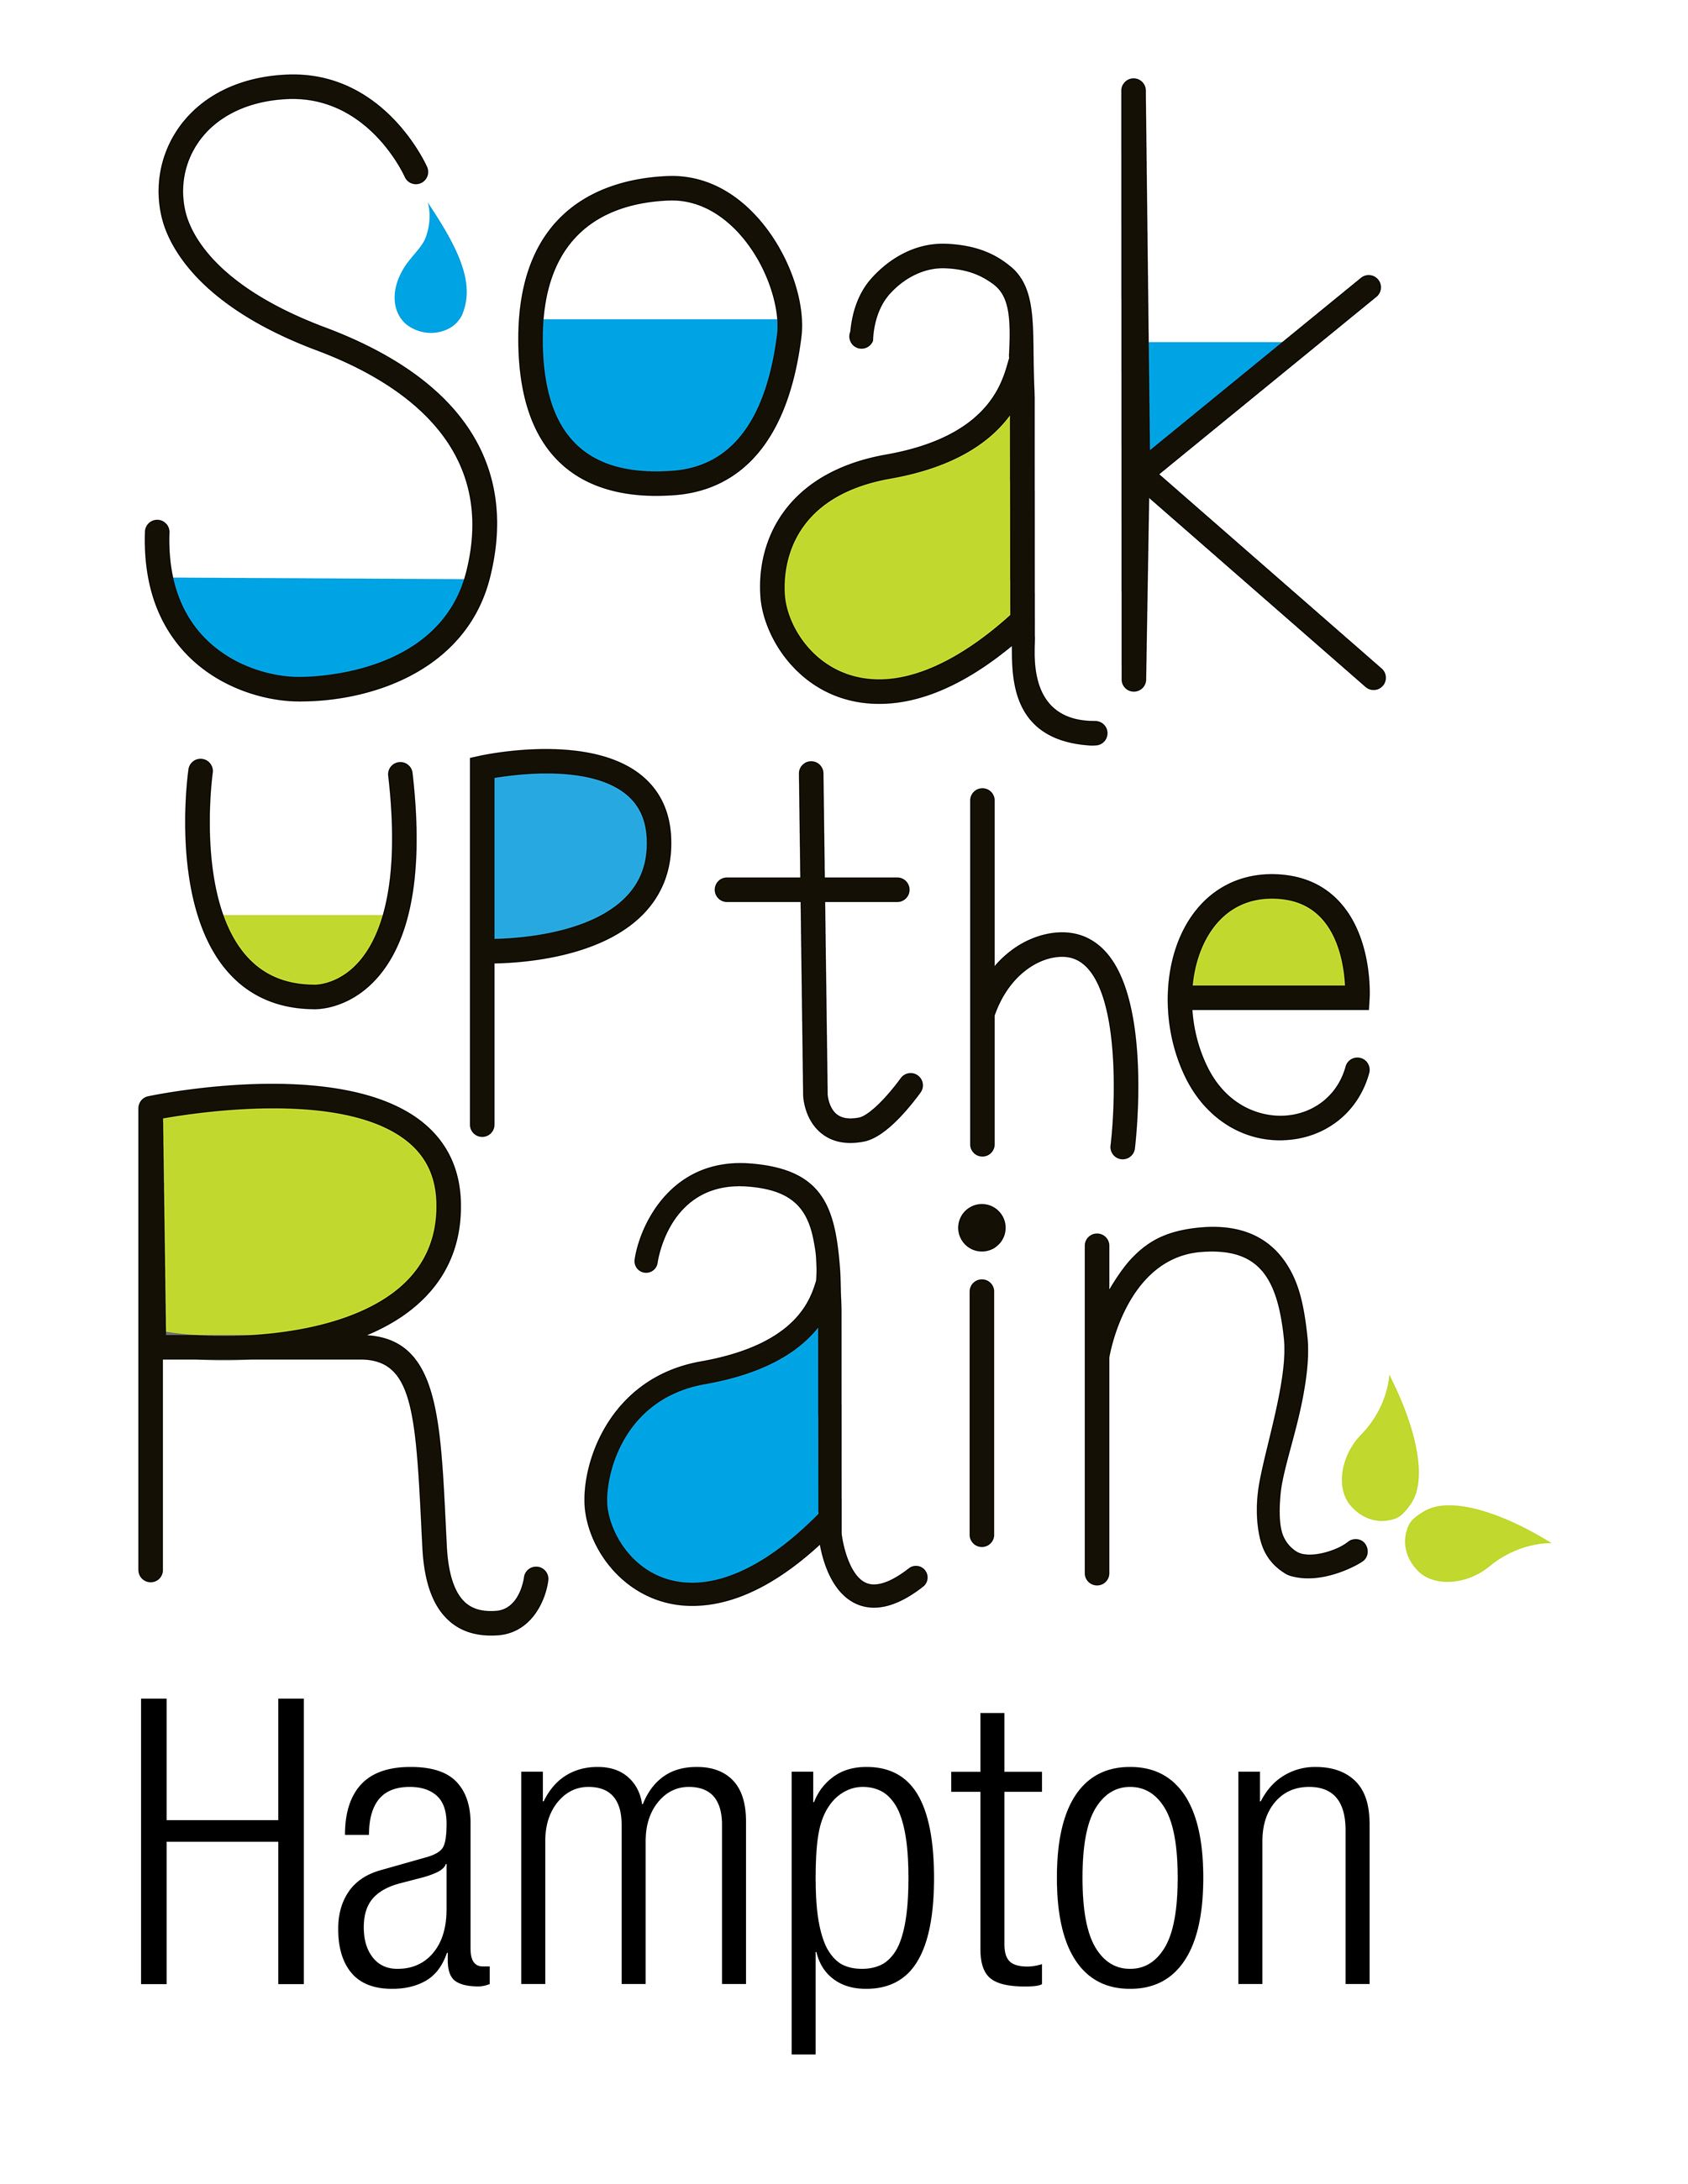 Soak up the Rain Hampton